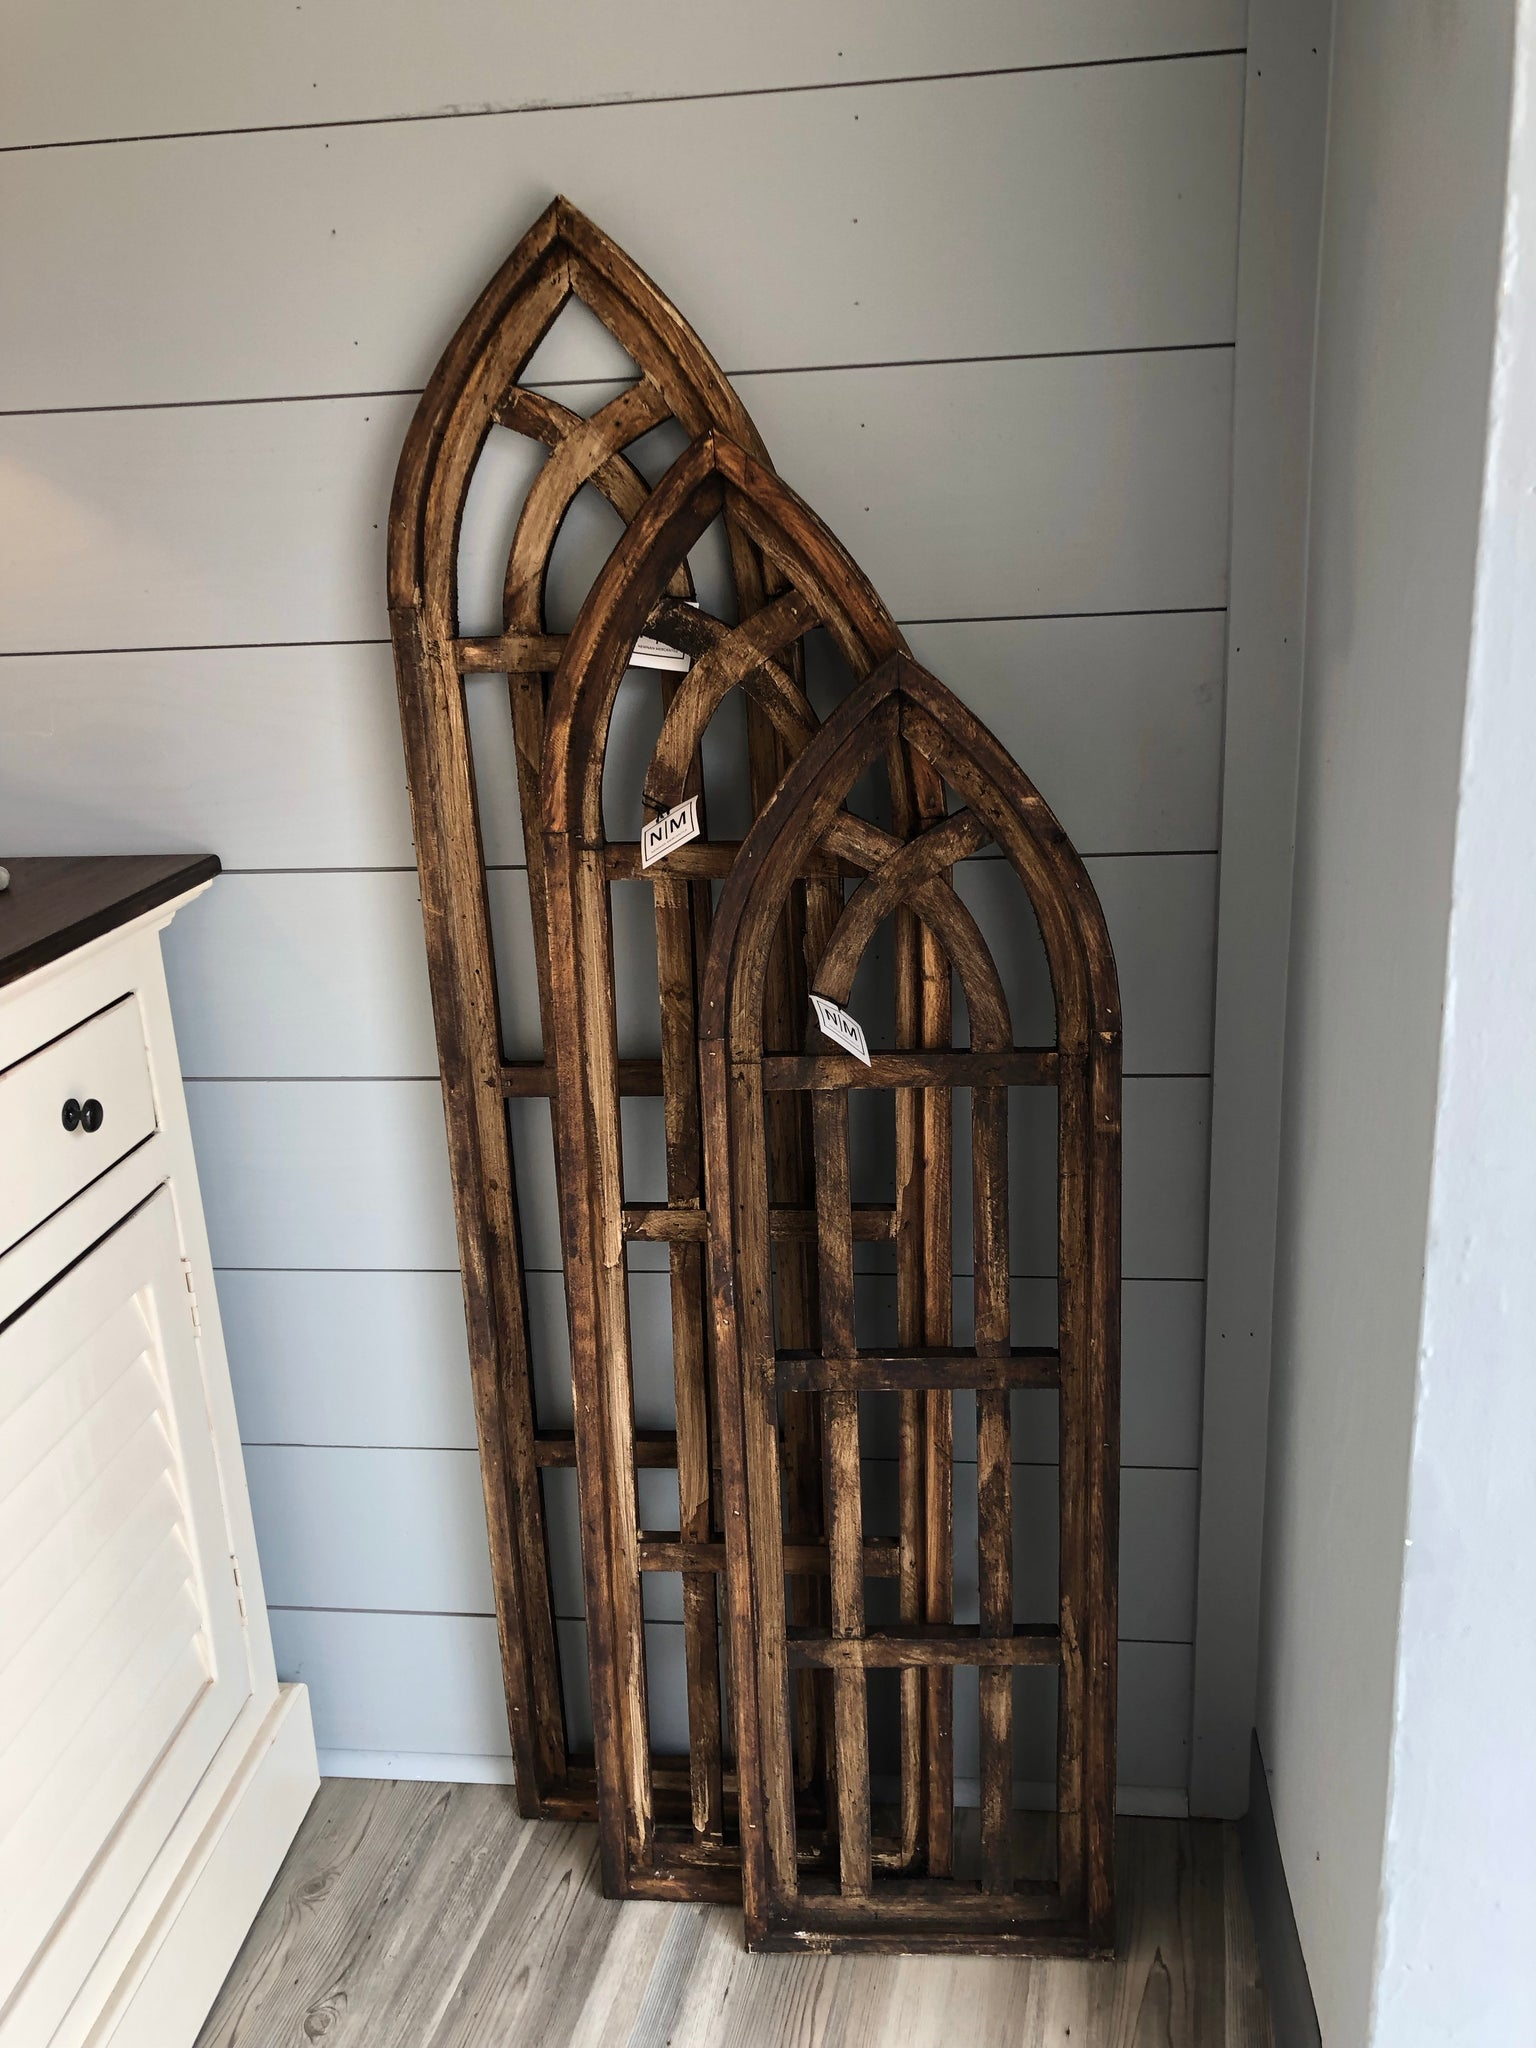 Wooden Farmhouse Arch Window | 3 sizes